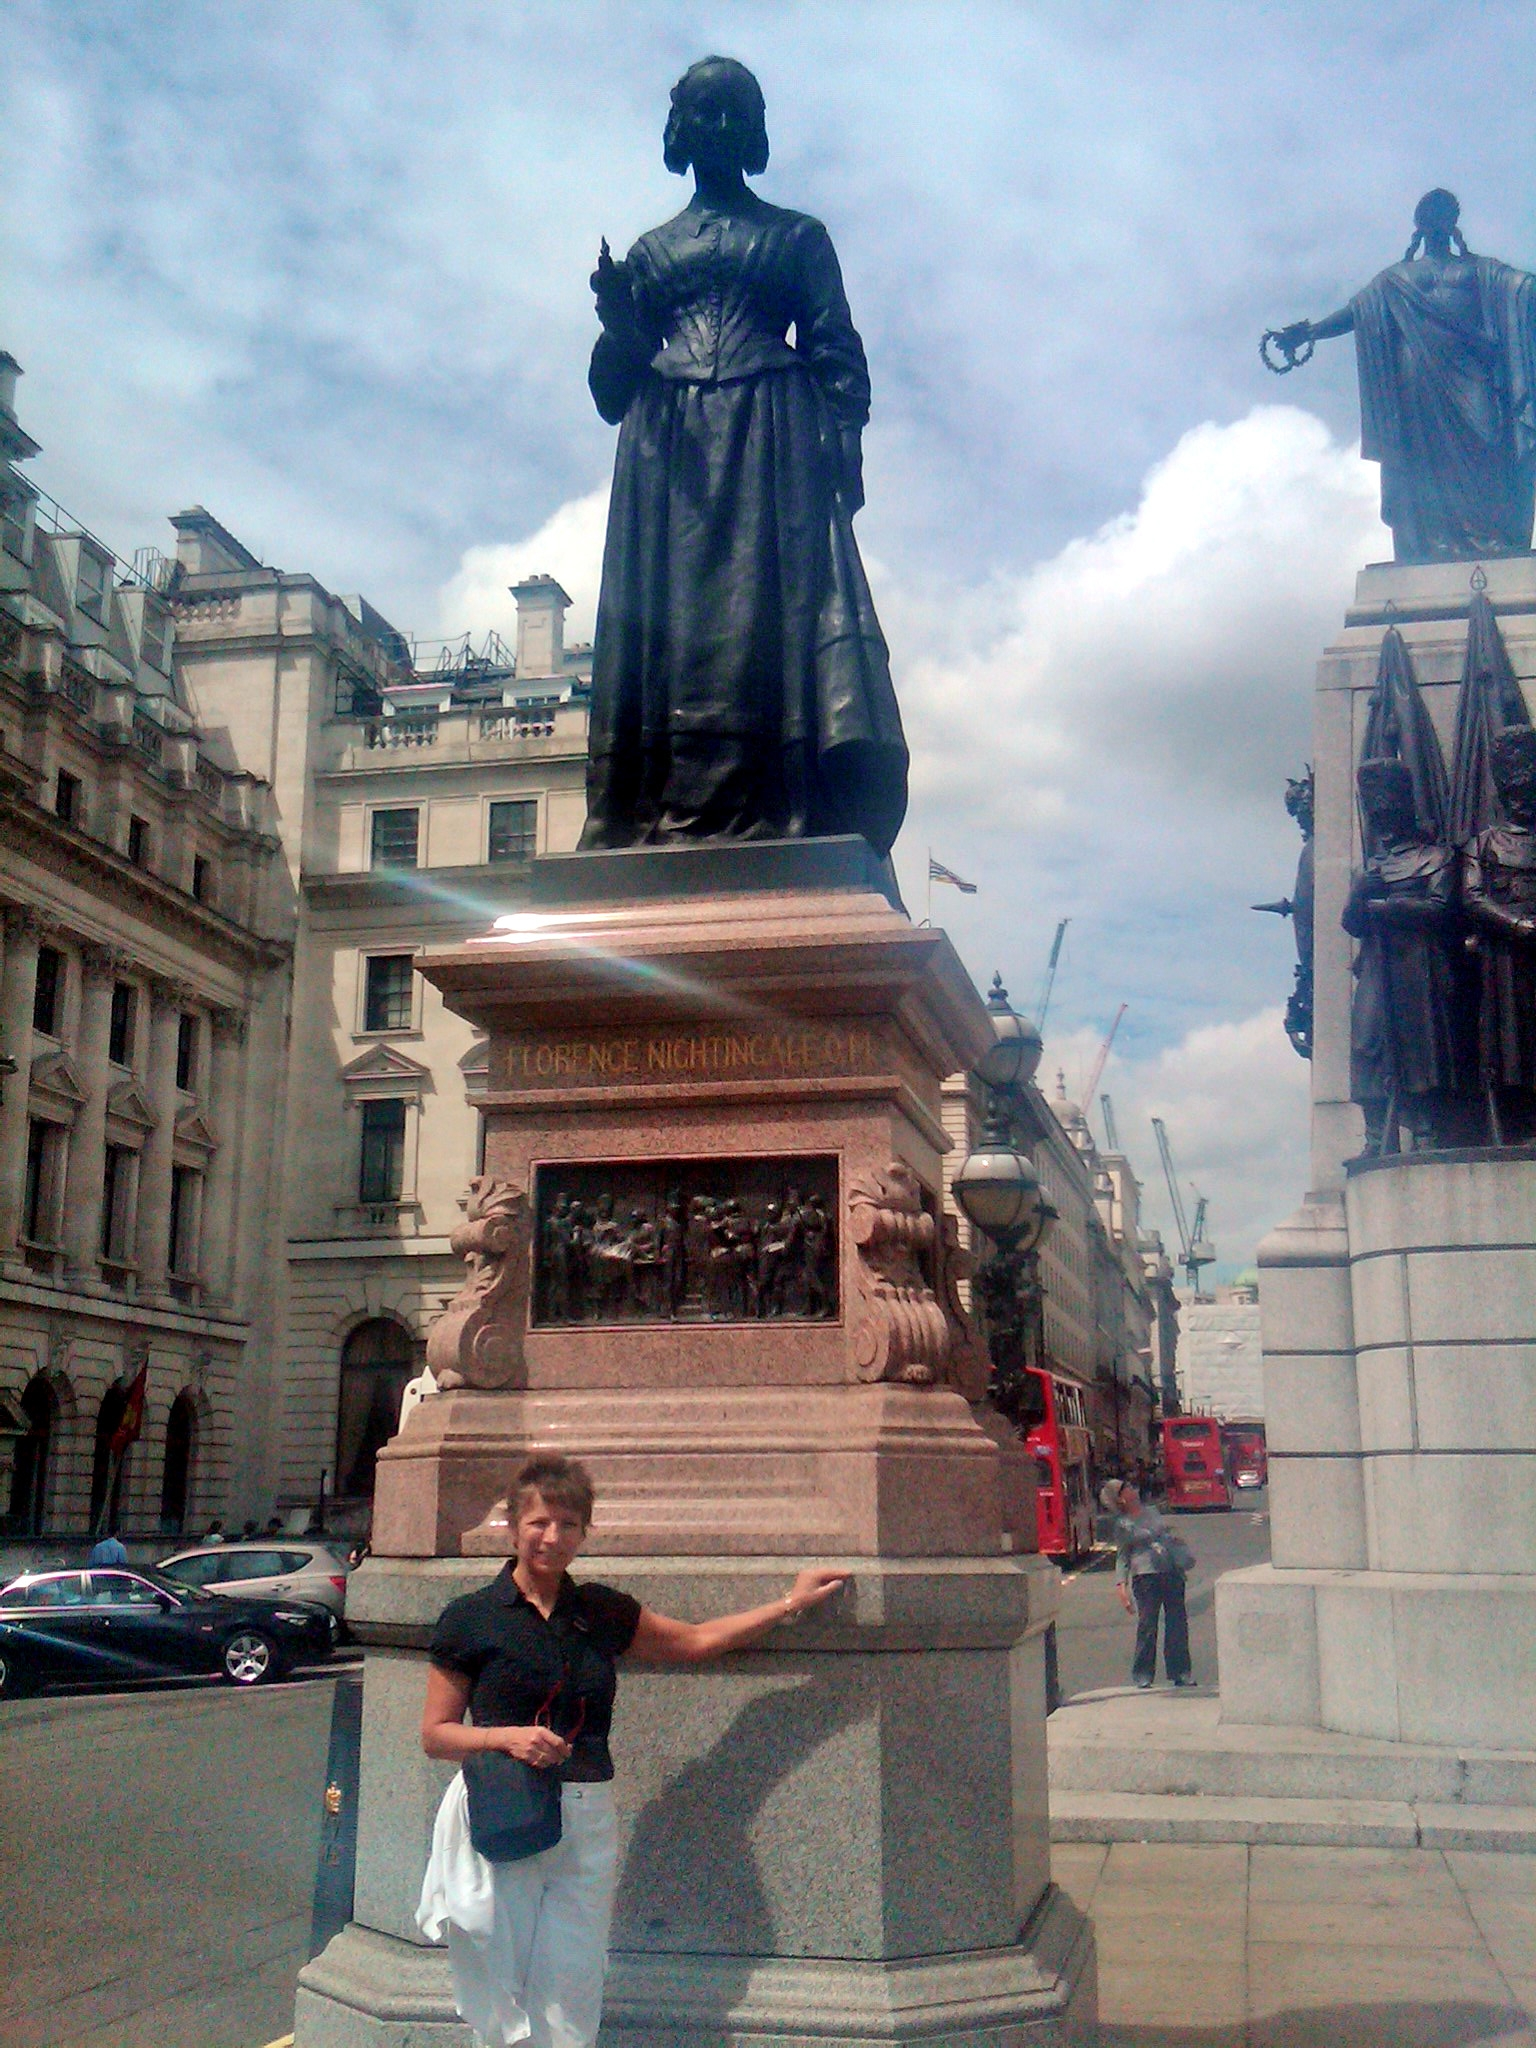 parting thoughts 10 lessons learned from florence nightingale s sue hassmiller at statue of florence nightingale london